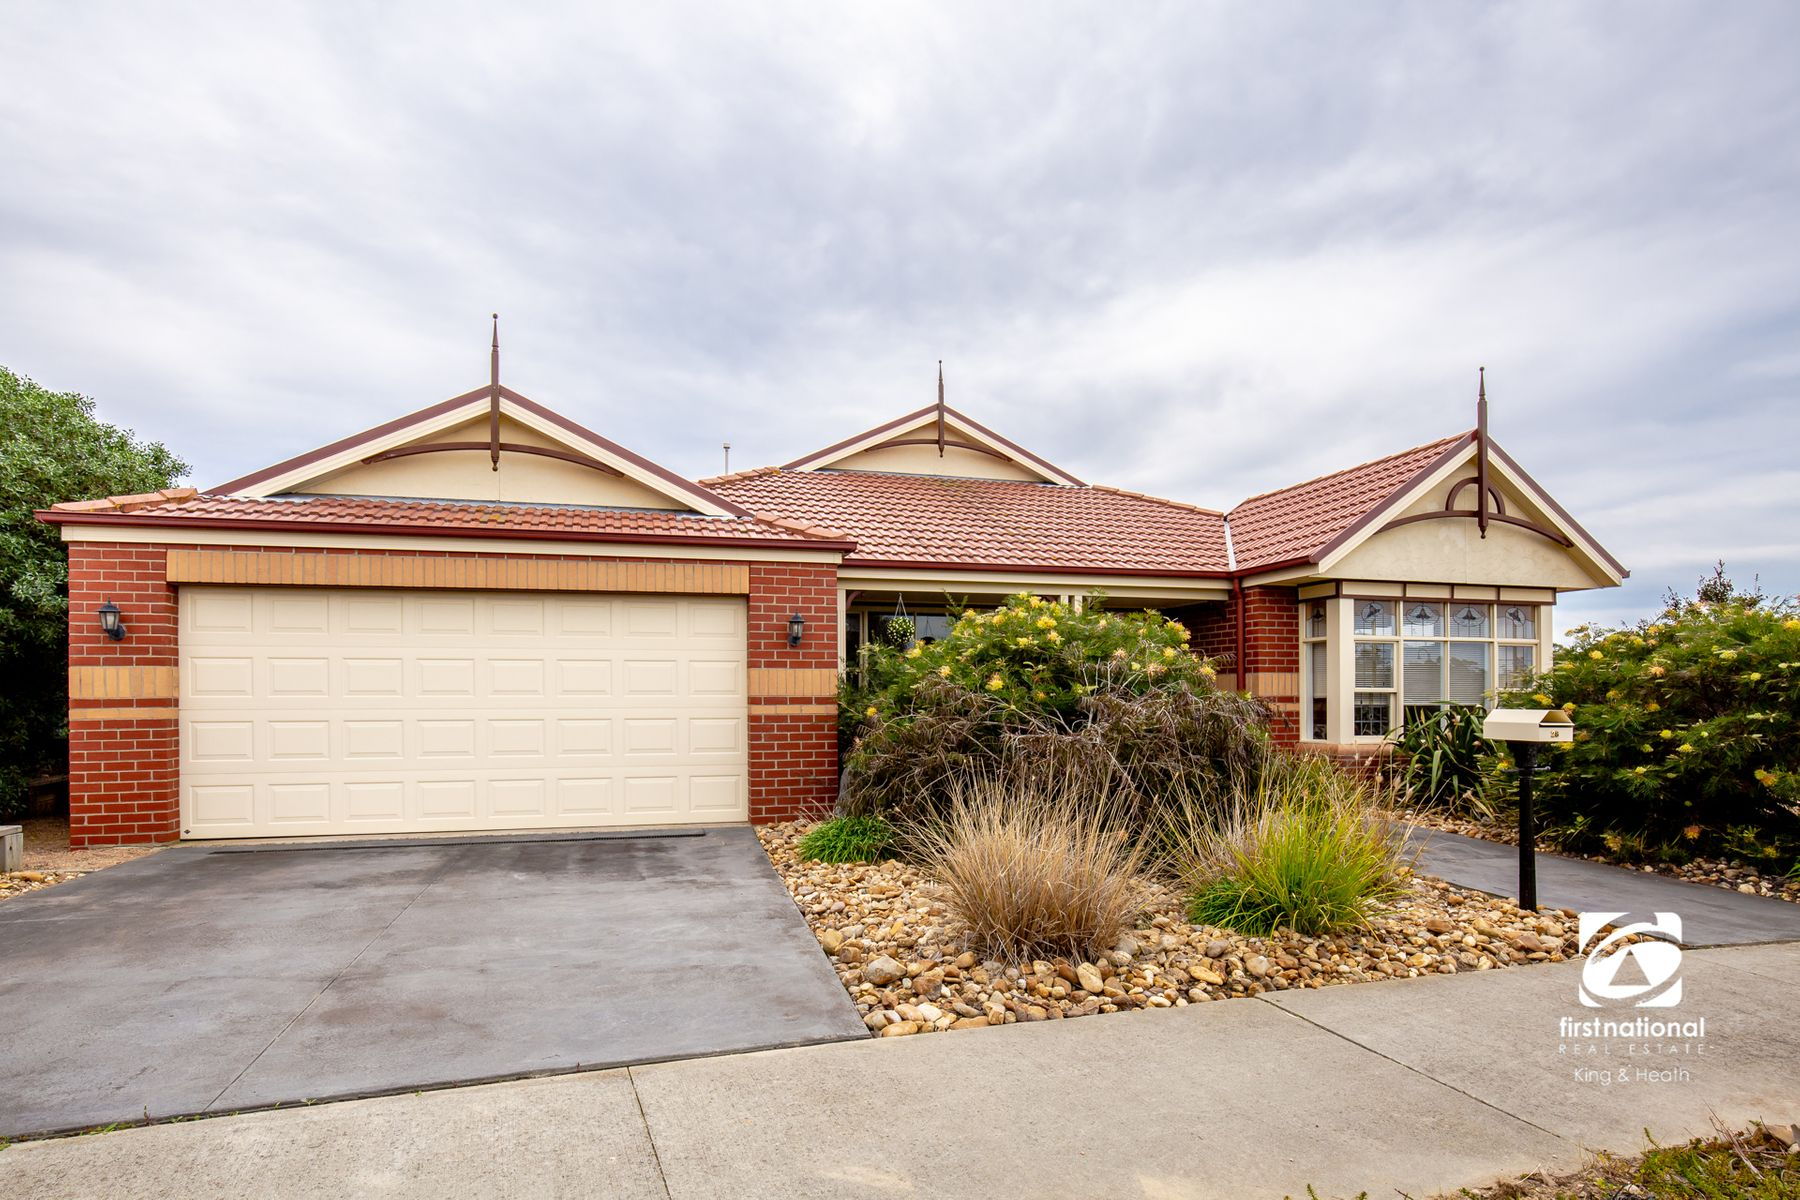 28 Riviera Close, Paynesville, VIC 3880